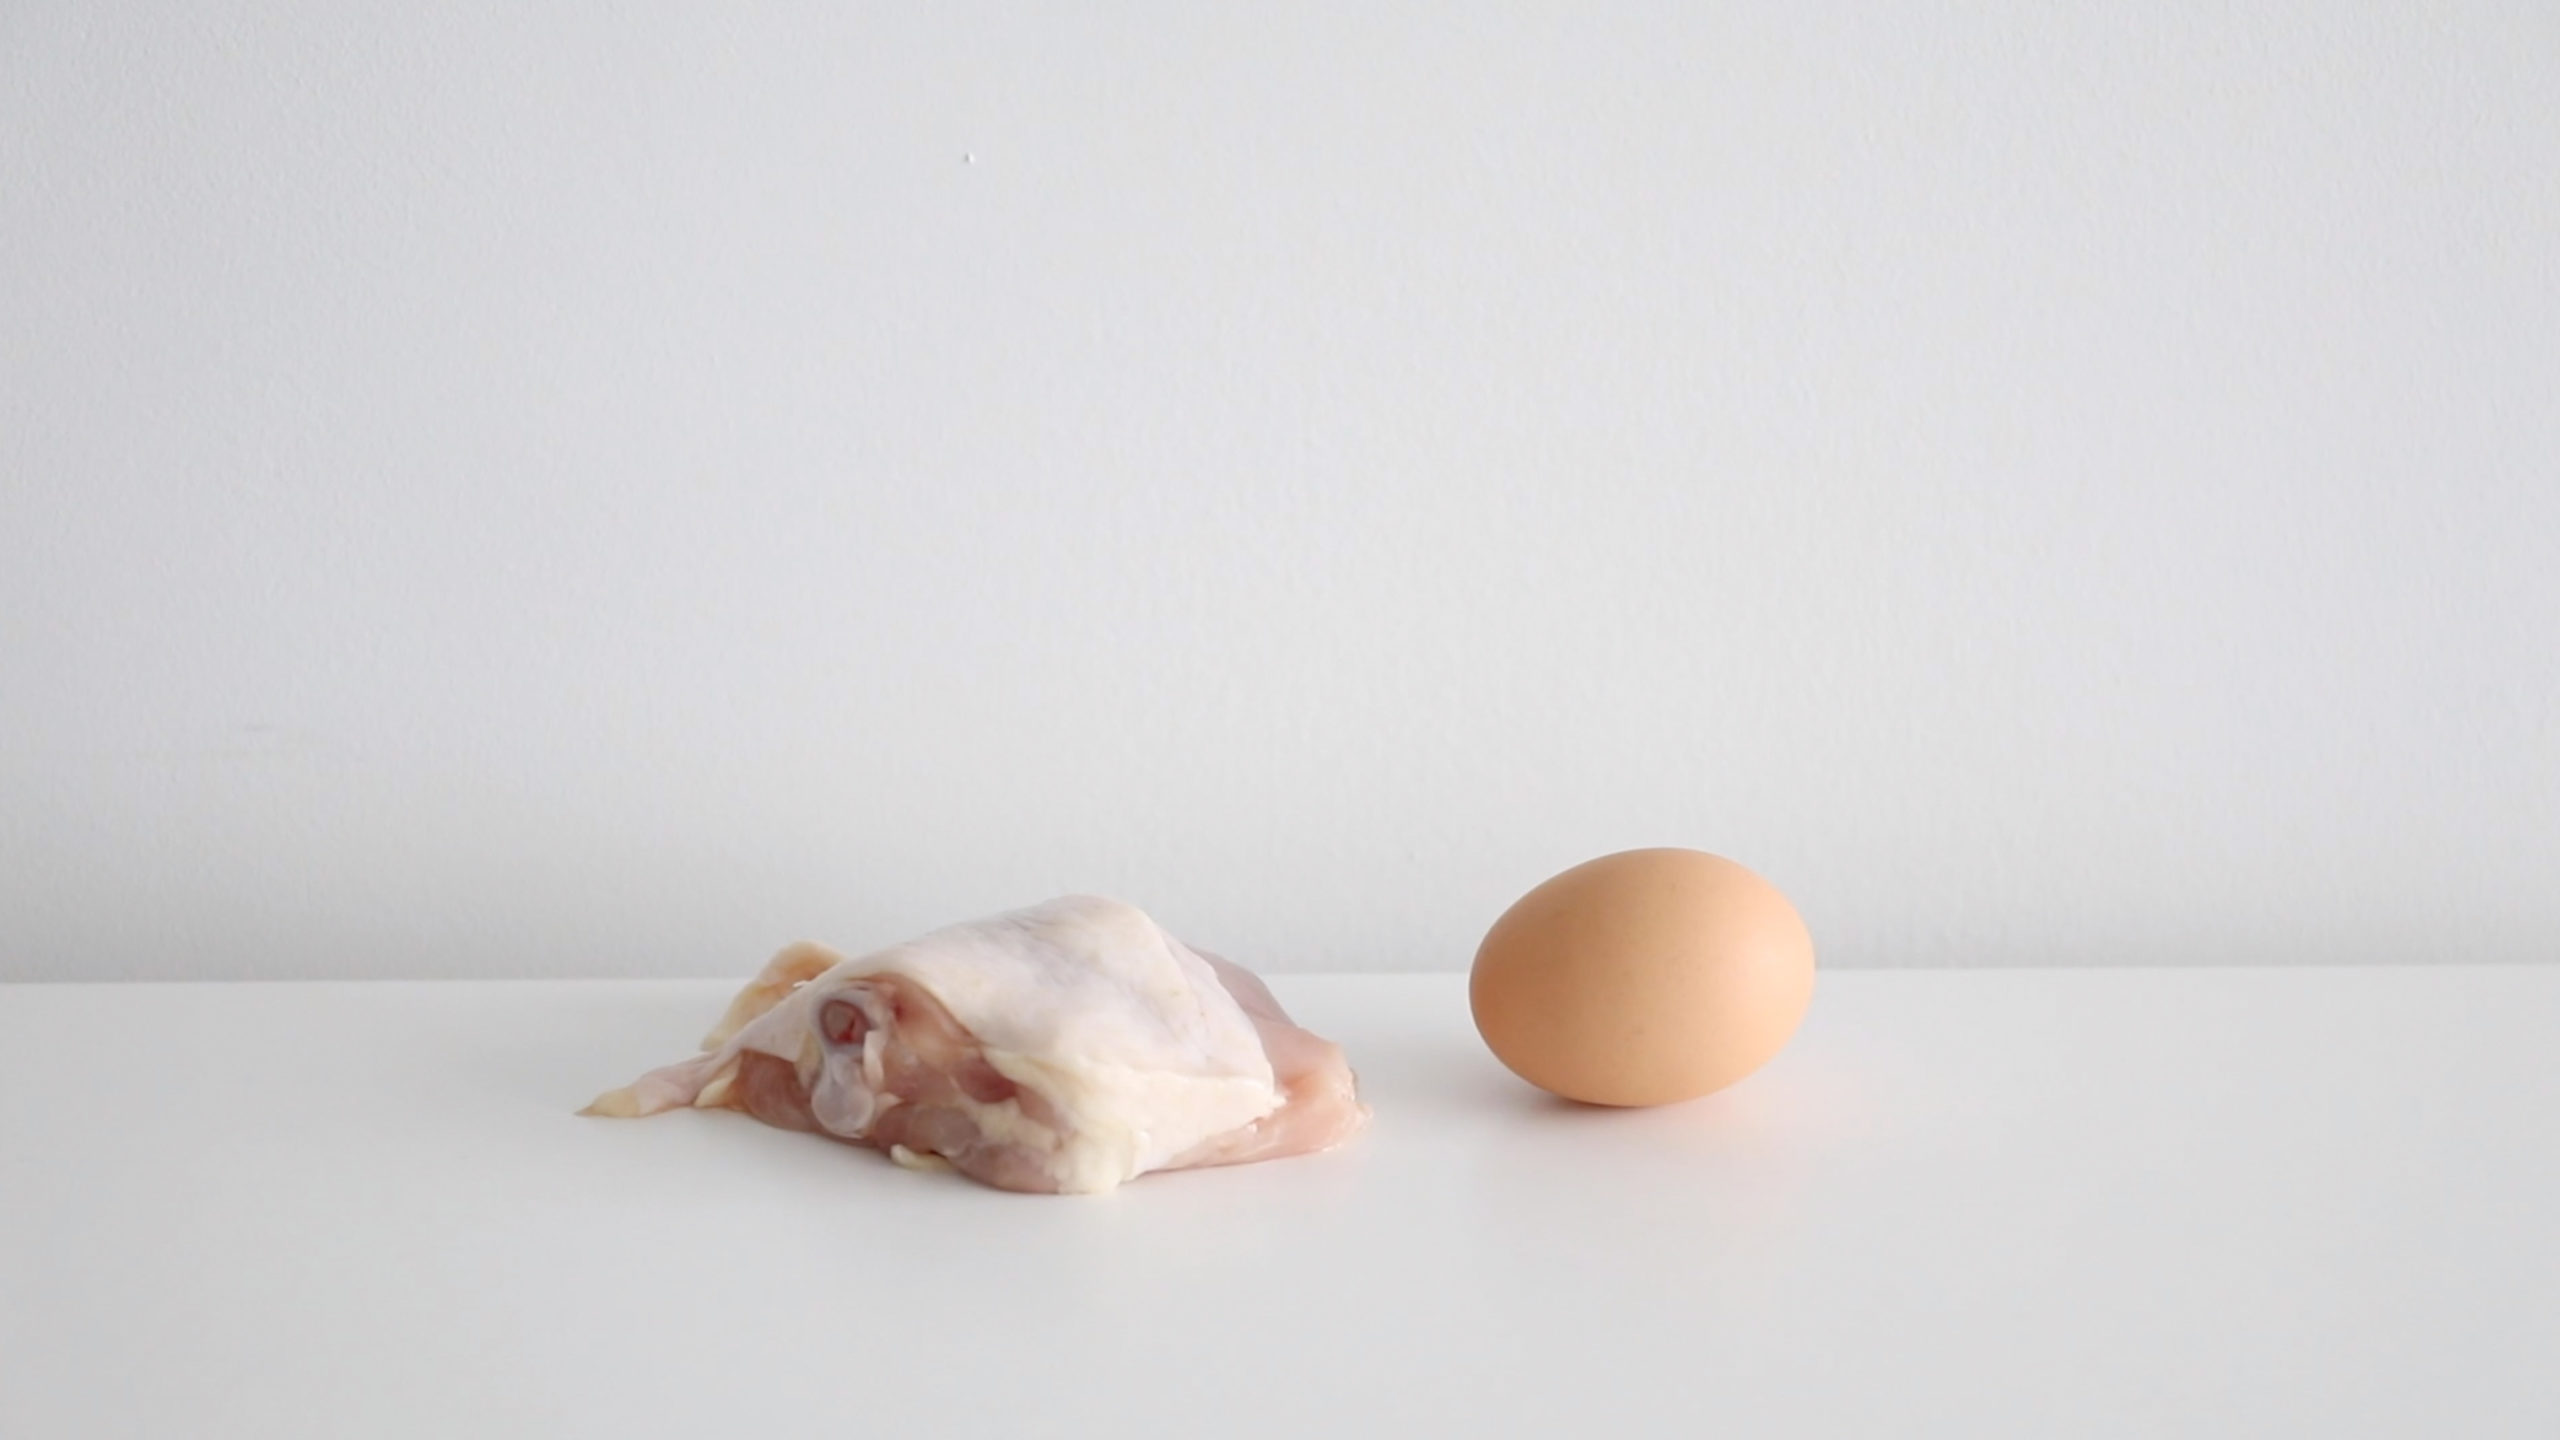 brown egg and piece of meat